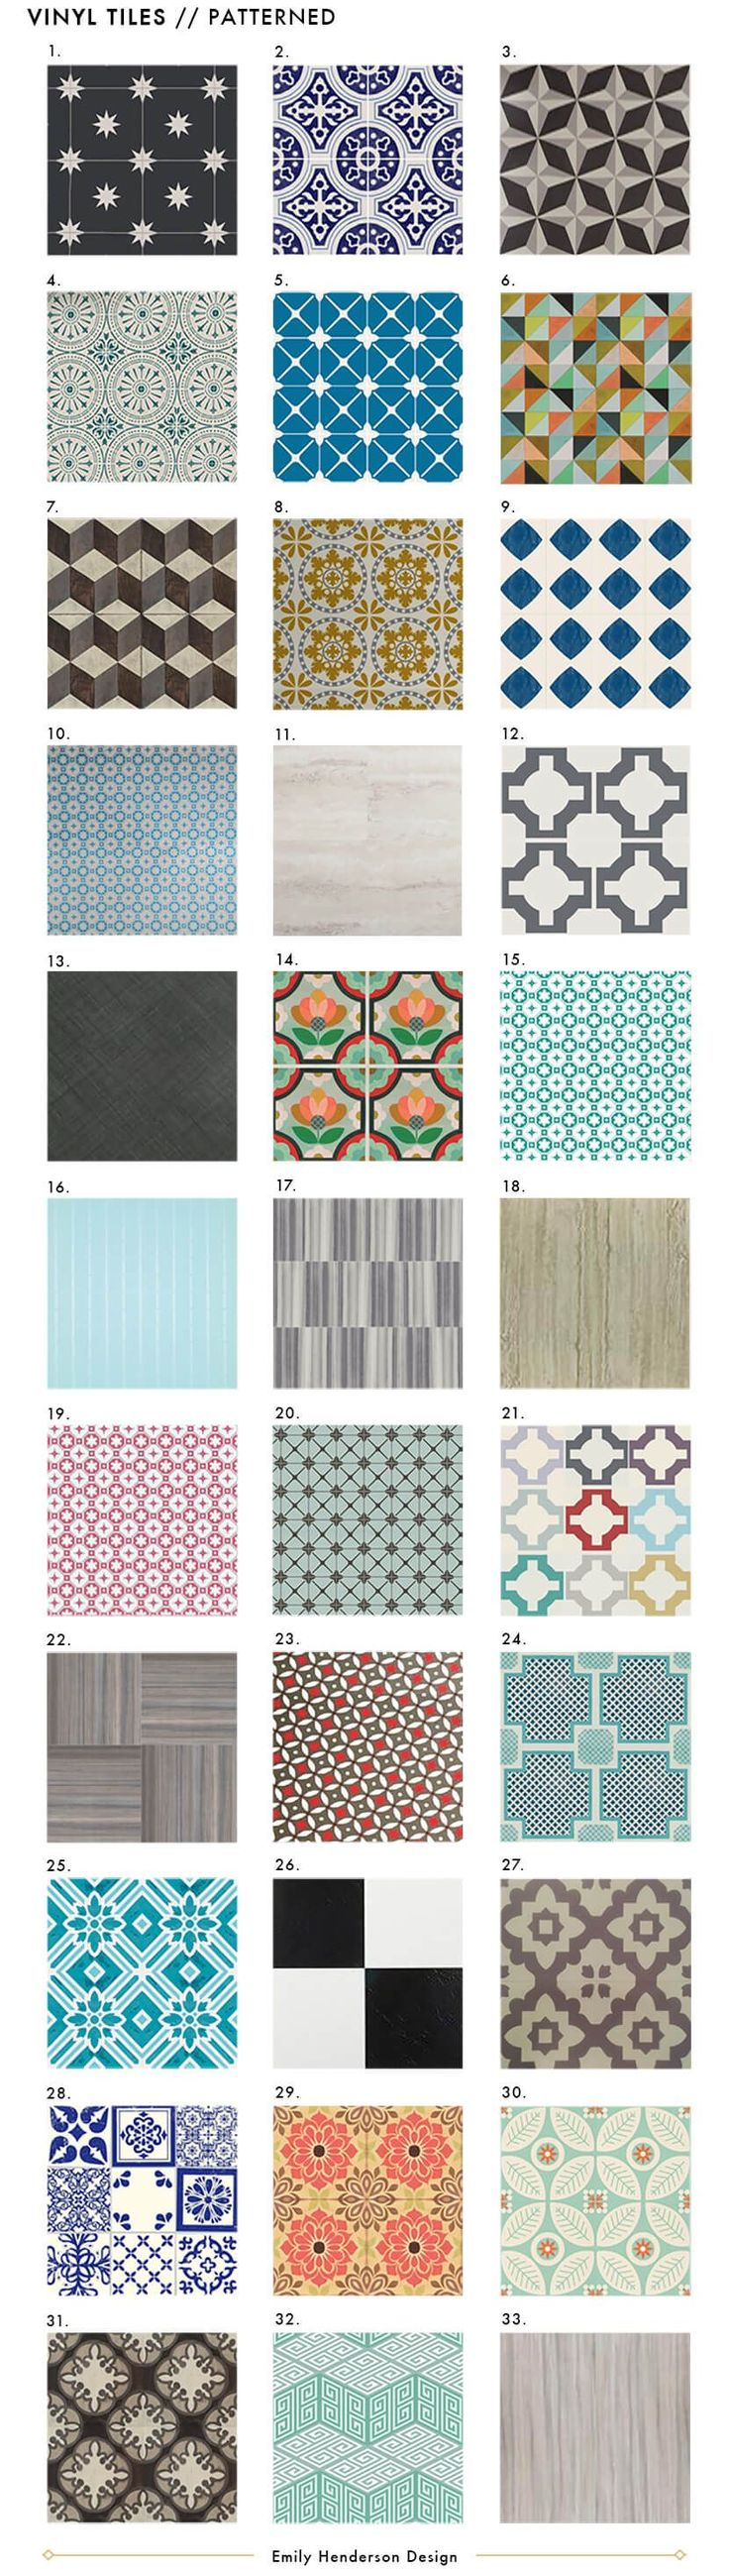 The 25 best ideas about vinyl tiles on pinterest vinyl for Stick down linoleum tiles